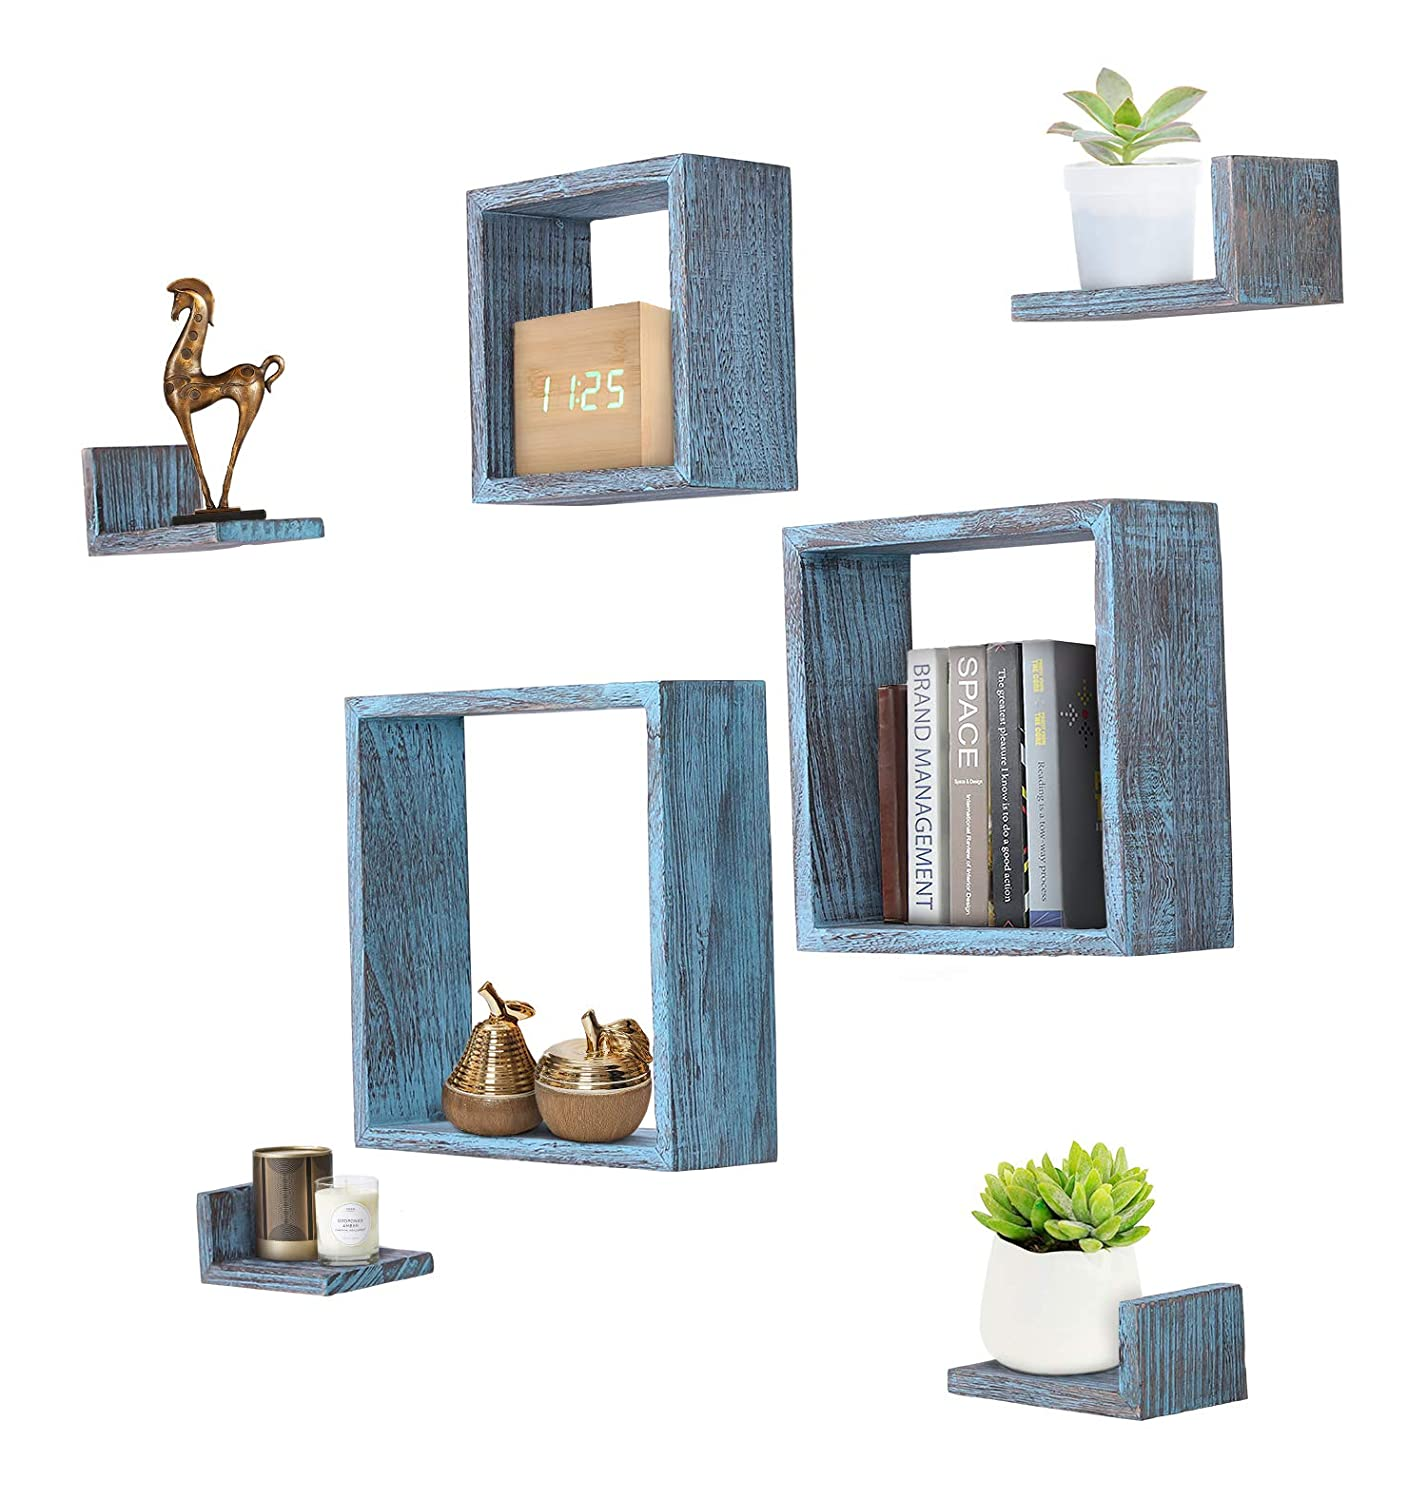 Comfify Rustic Wall Mounted Square Shaped Floating Shelves – Set of 7 – 3 Square Shelves and 4 L-Shaped Rustic Shelves – Screws and Anchors Included – Rustic Wall Décor - Rustic Blue